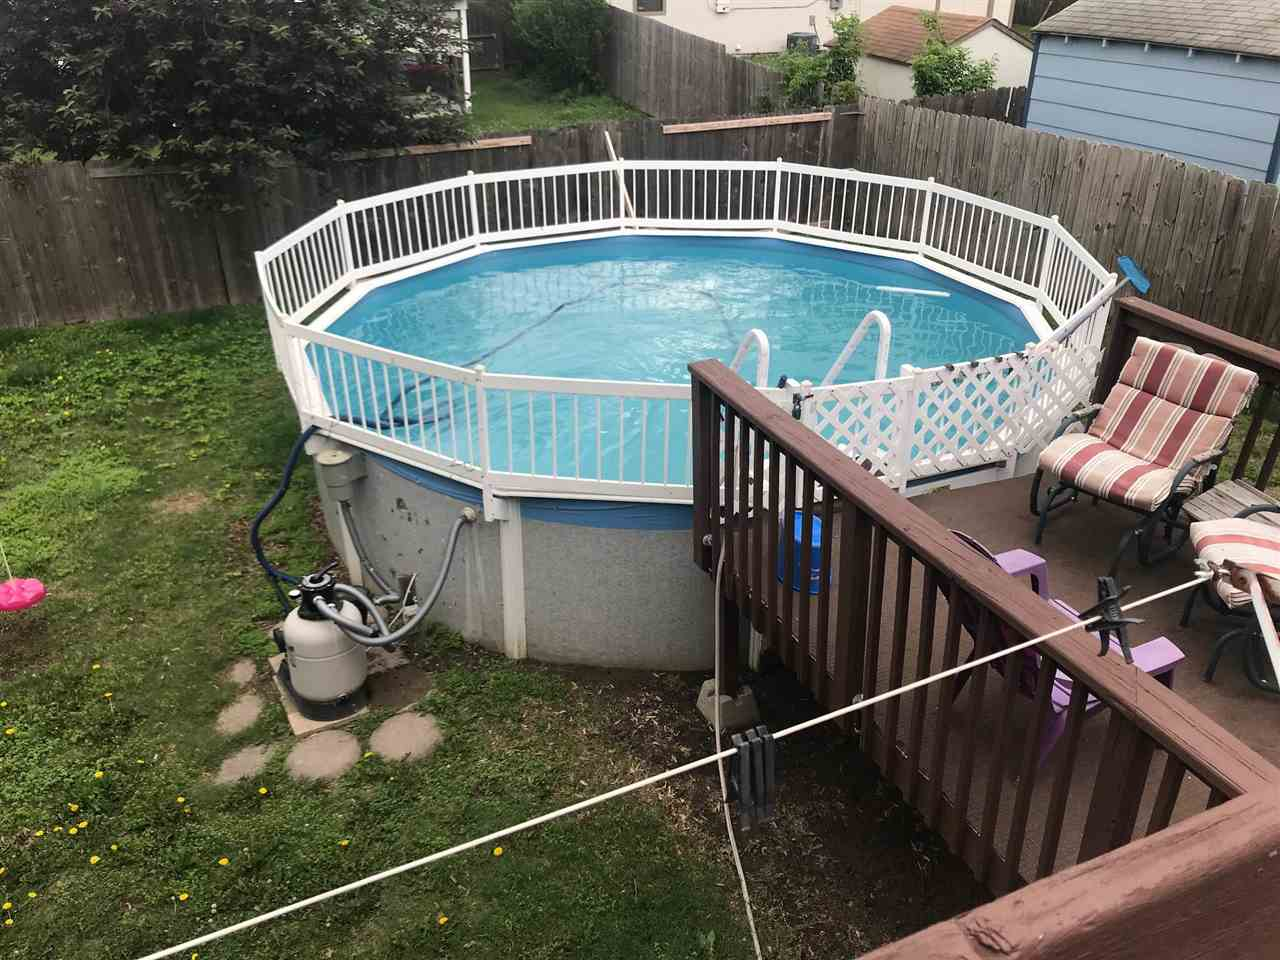 Pool can stay or go if buyer wishes